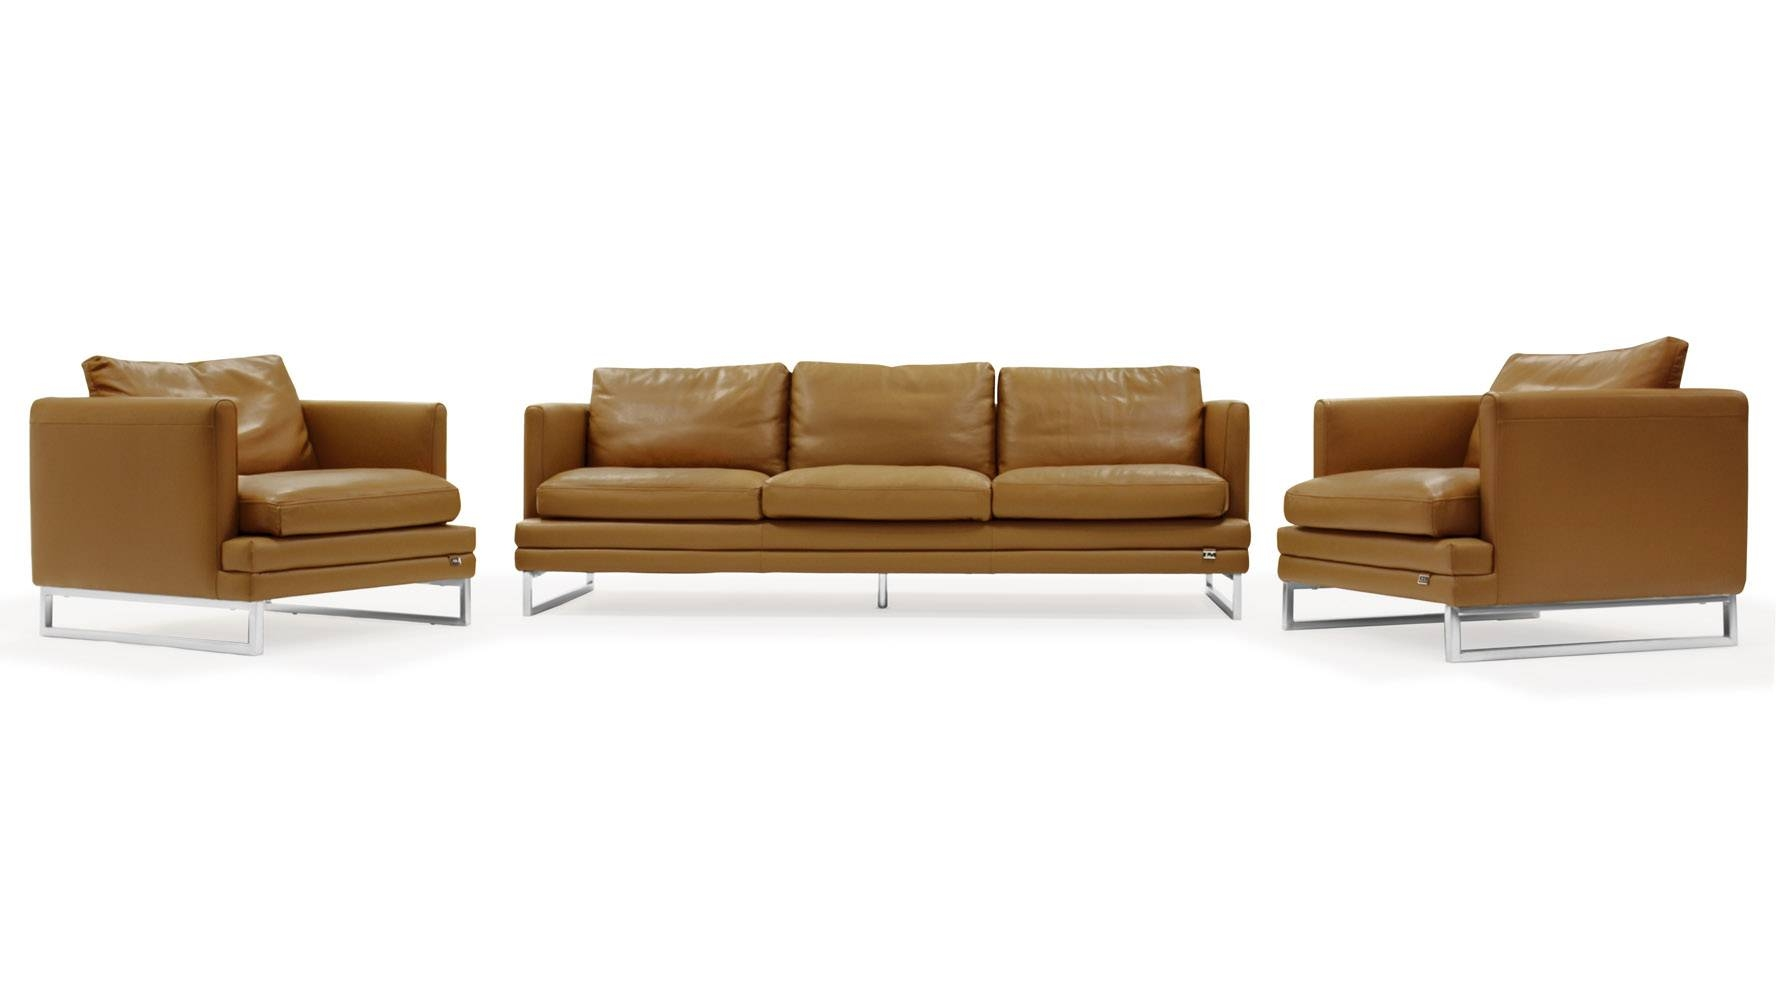 Sofa Modern Sofas And Chairs Leather Chair Sets | Tamingthesat for Contemporary Sofas and Chairs (Image 14 of 15)